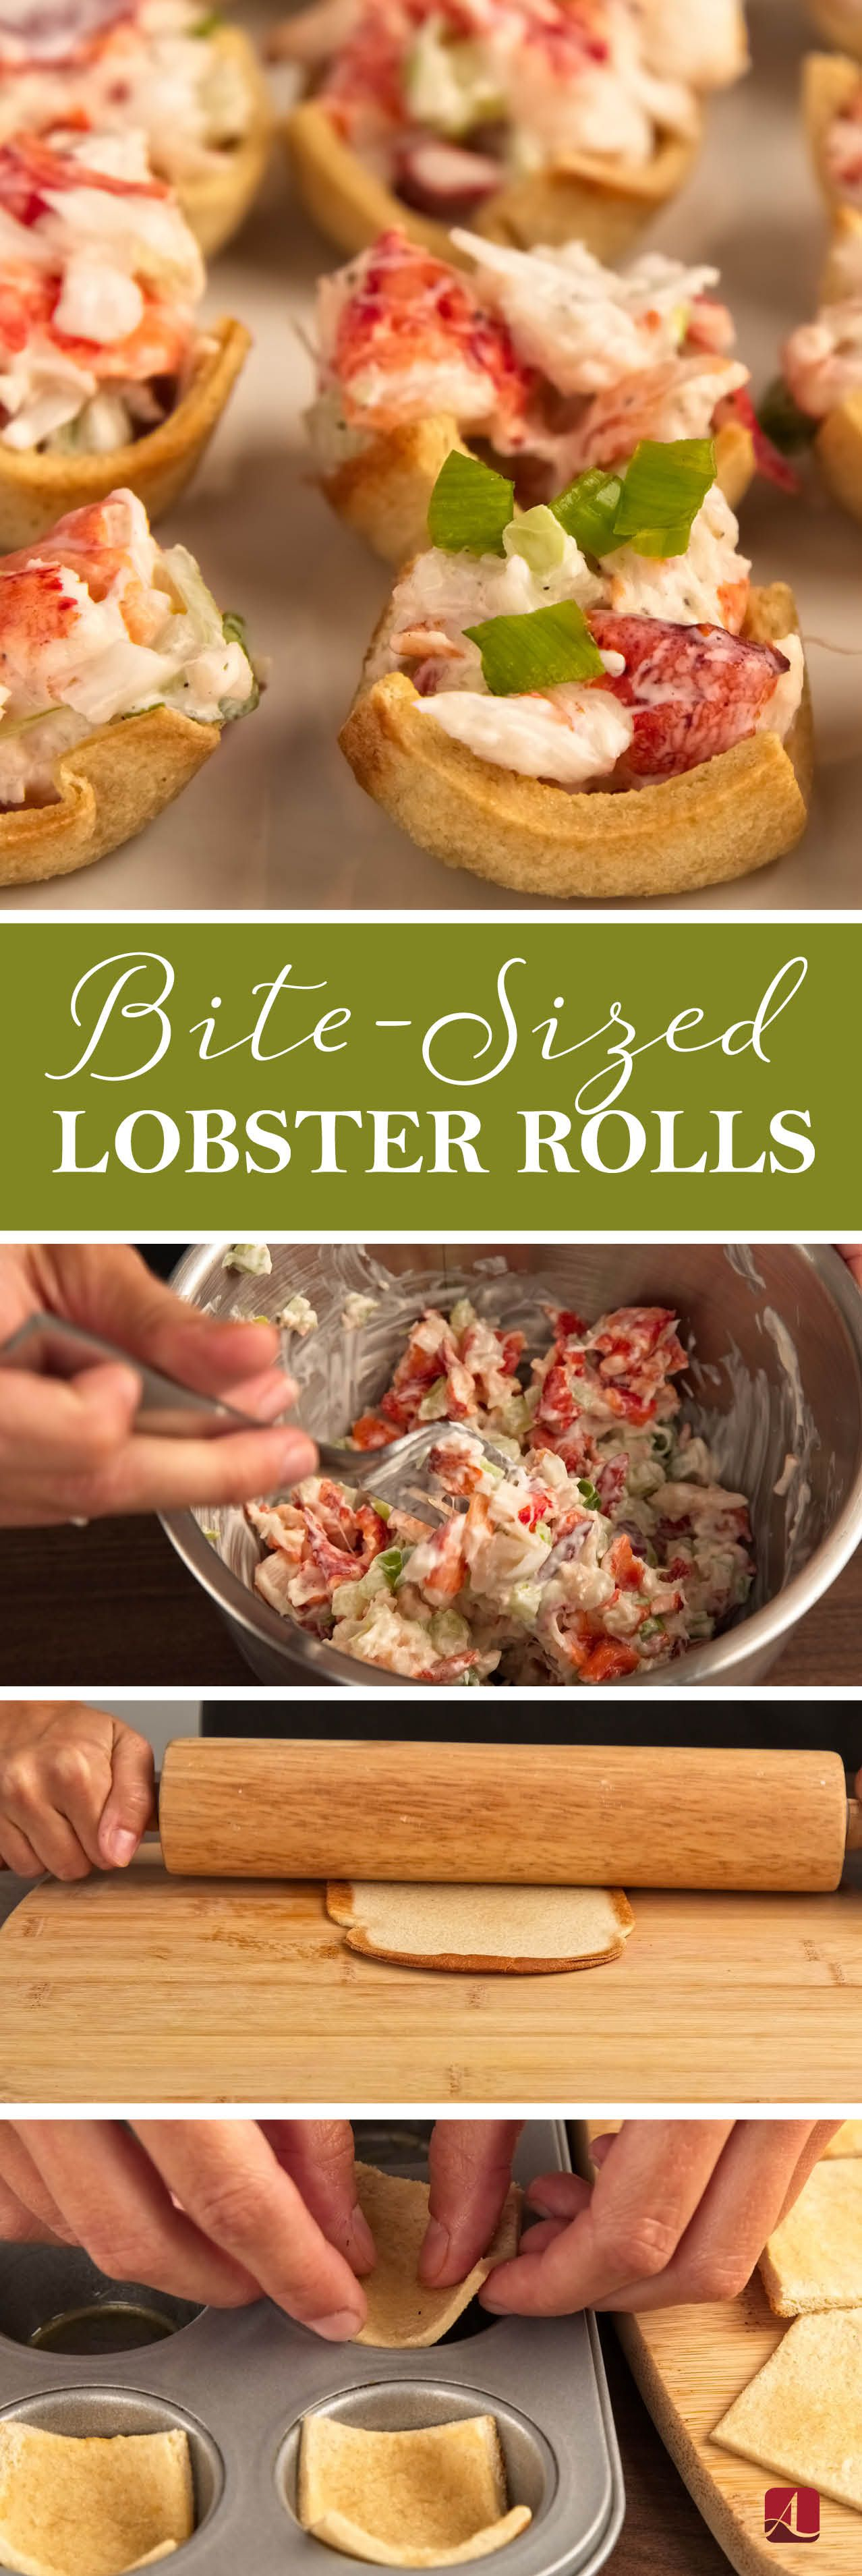 Photo of Bite-Sized Lobster Rolls – American Lifestyle Magazine